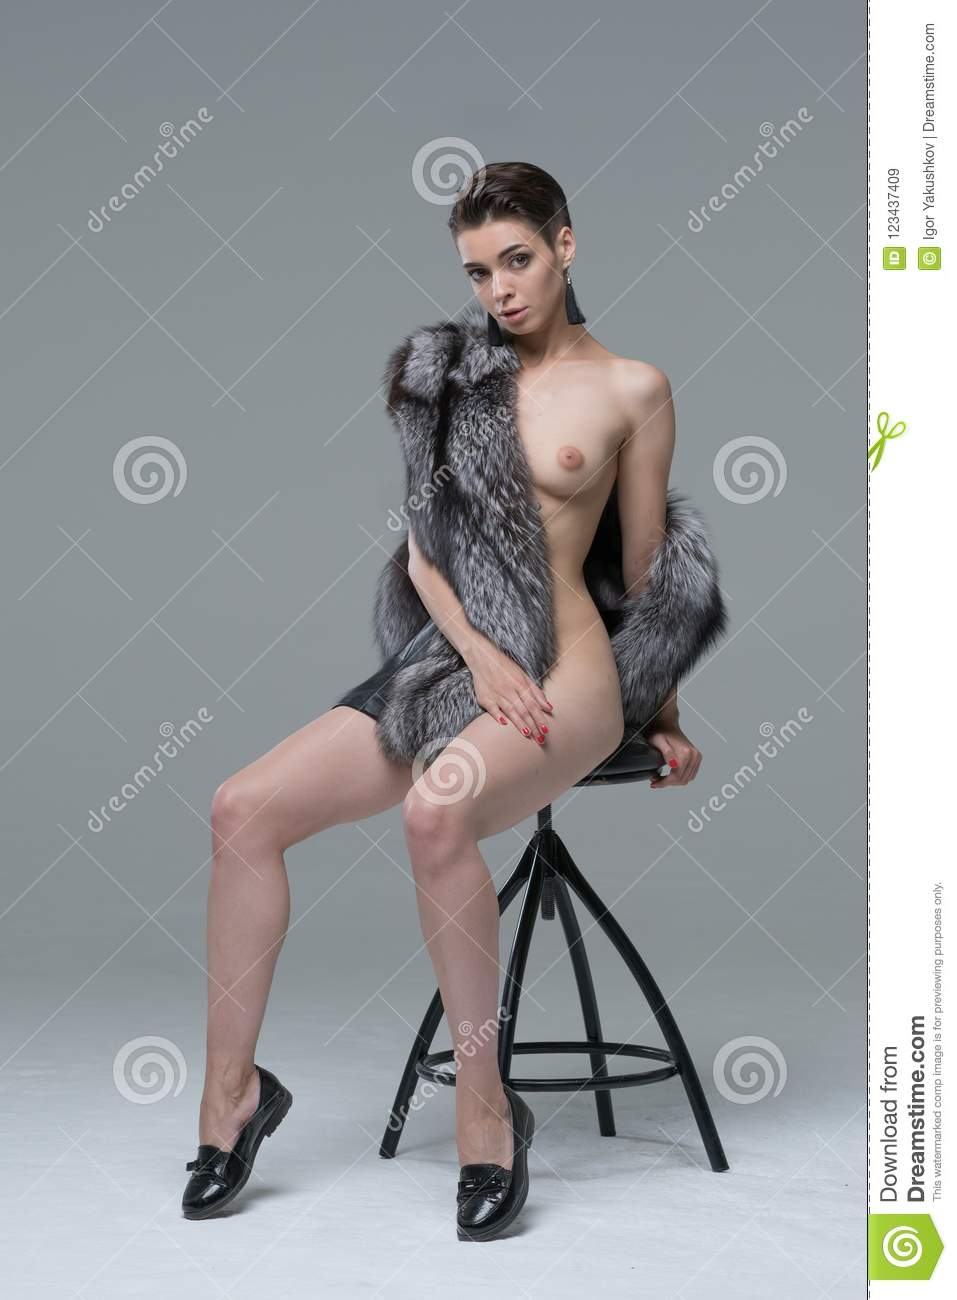 Thanks Women in fur nude all personal